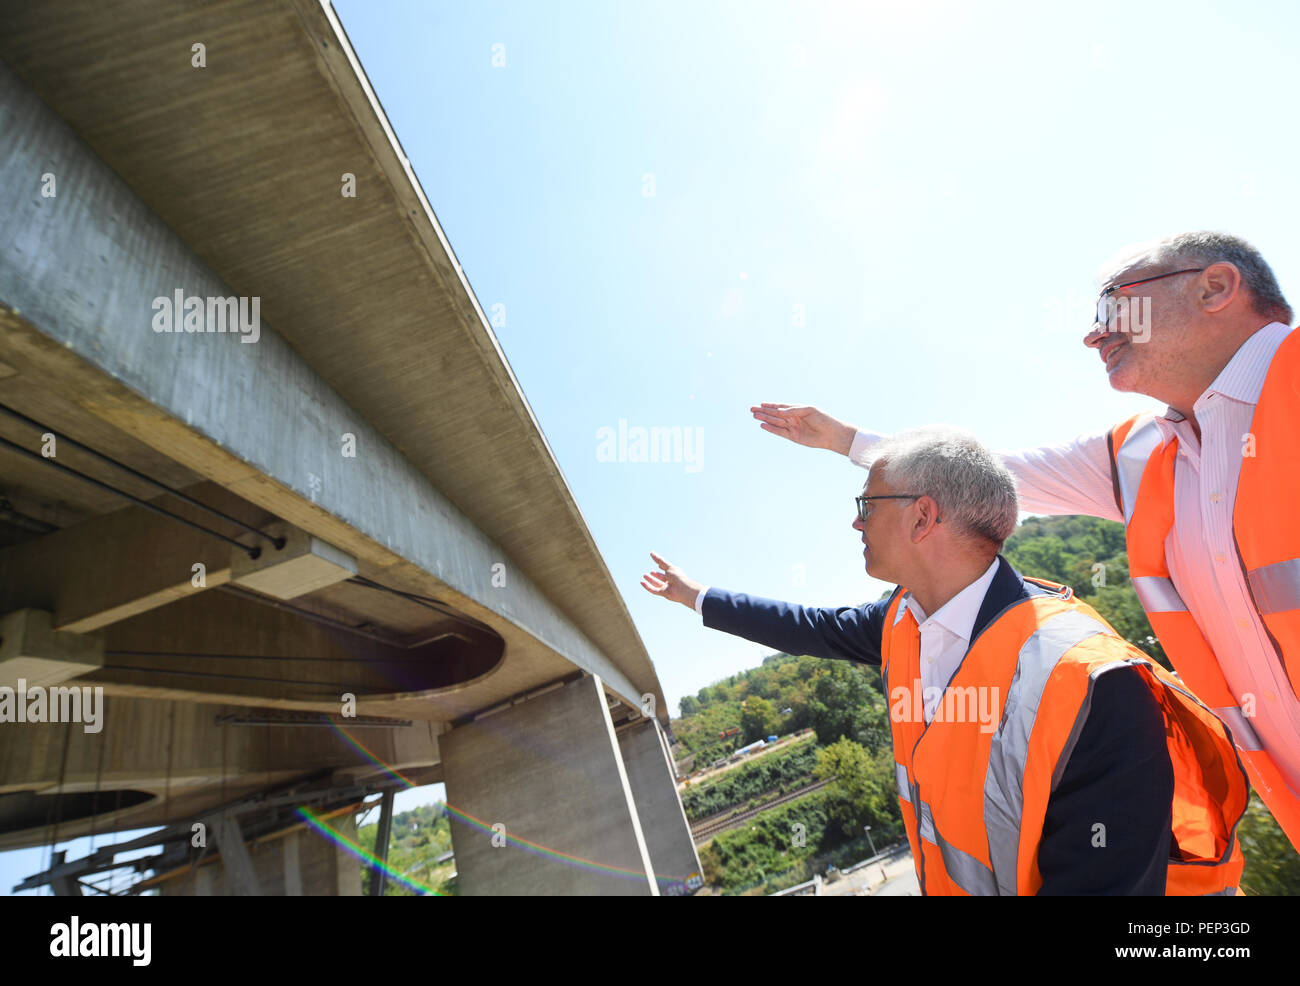 Wiesbaden, Germany. 16th Aug, 2018. Burkhard Vieth (r), President of the Hessen Mobil Road Transport Authority, and Tarek Al-Wazir (Alliance 90/The Greens), Transport Minister of the State of Hesse, visit the Wiesbaden Salzbach Valley Bridge (A66 motorway) during a press event. Hessen Mobil uses the bridge as an example to show how the condition of a bridge is checked. Credit: Arne Dedert/dpa/Alamy Live News - Stock Image